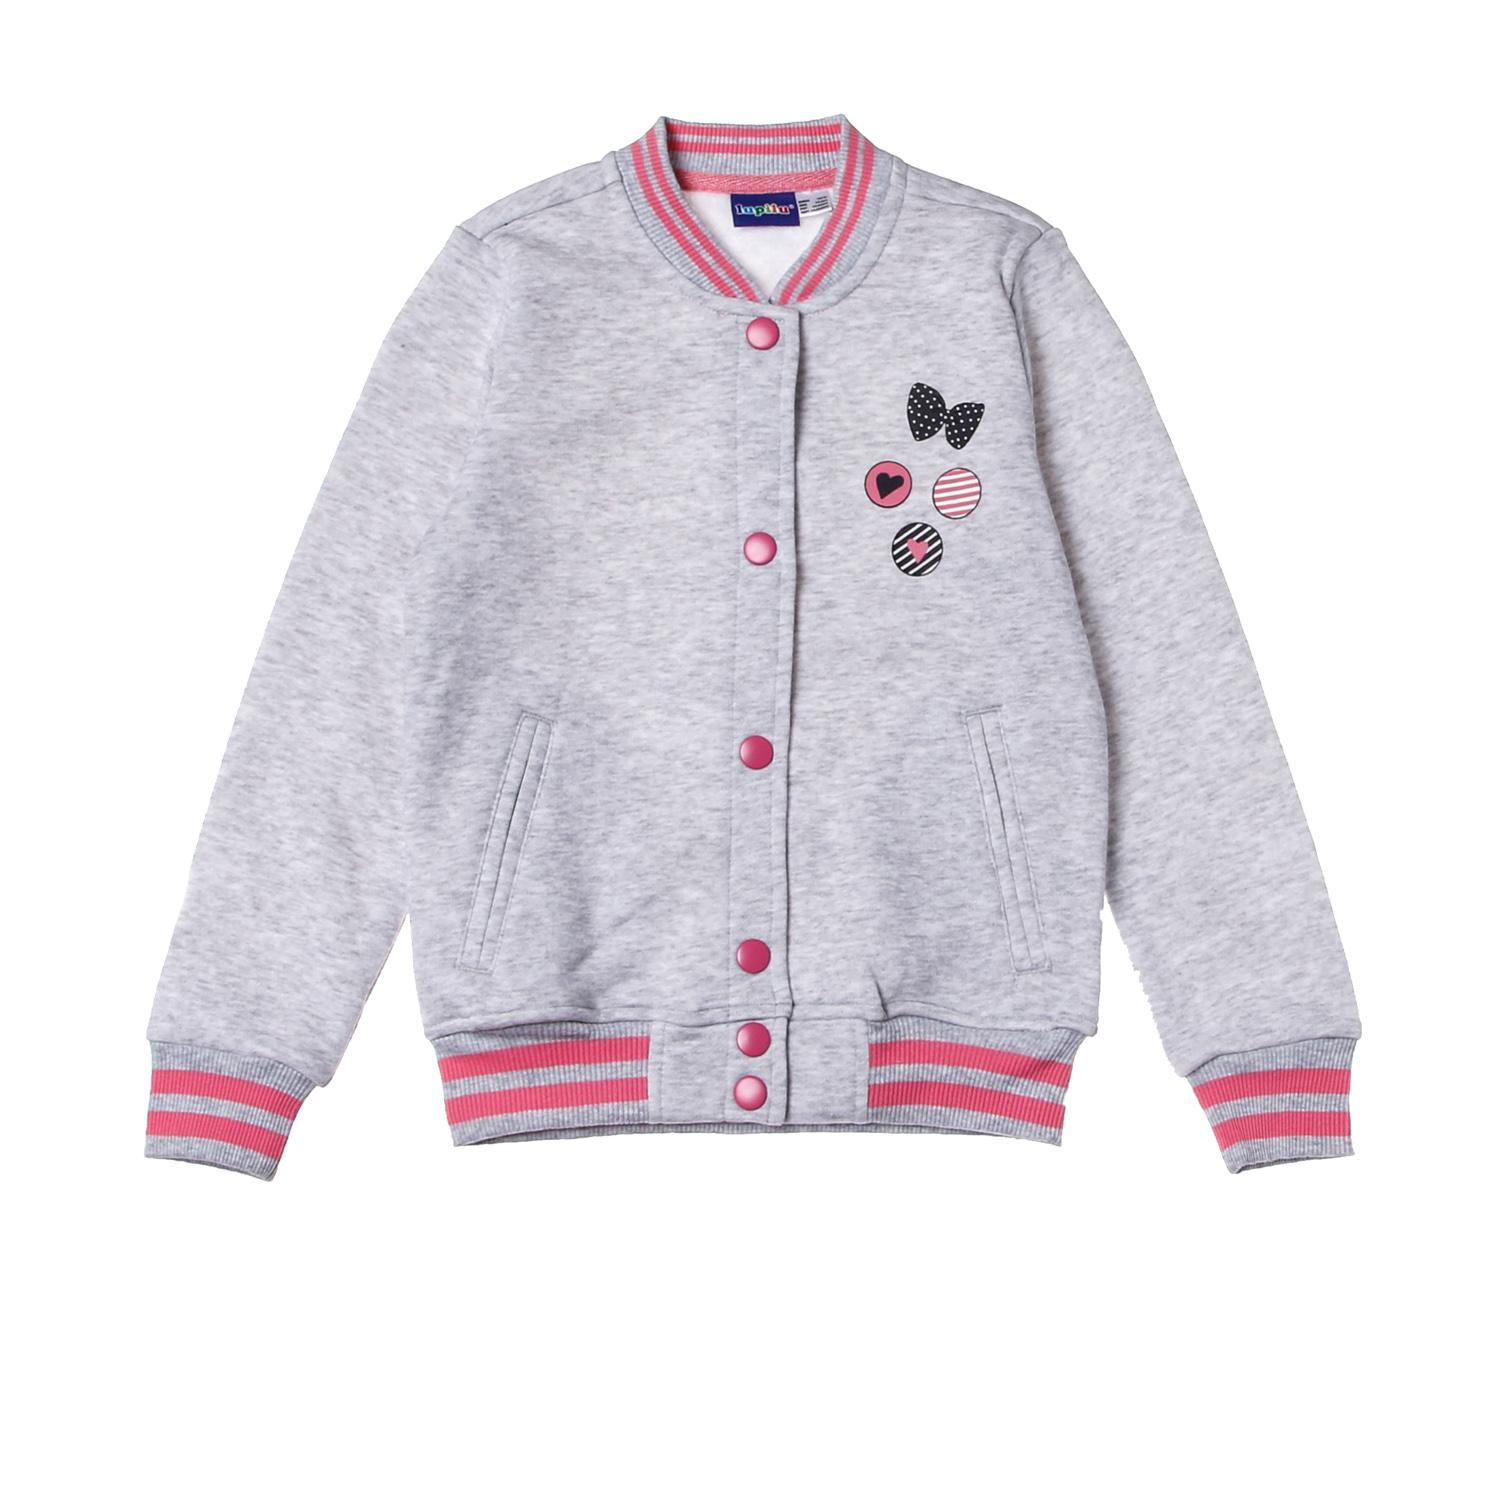 00aaaad88 Girls Jackets for sale - Girls Baby Coats online brands